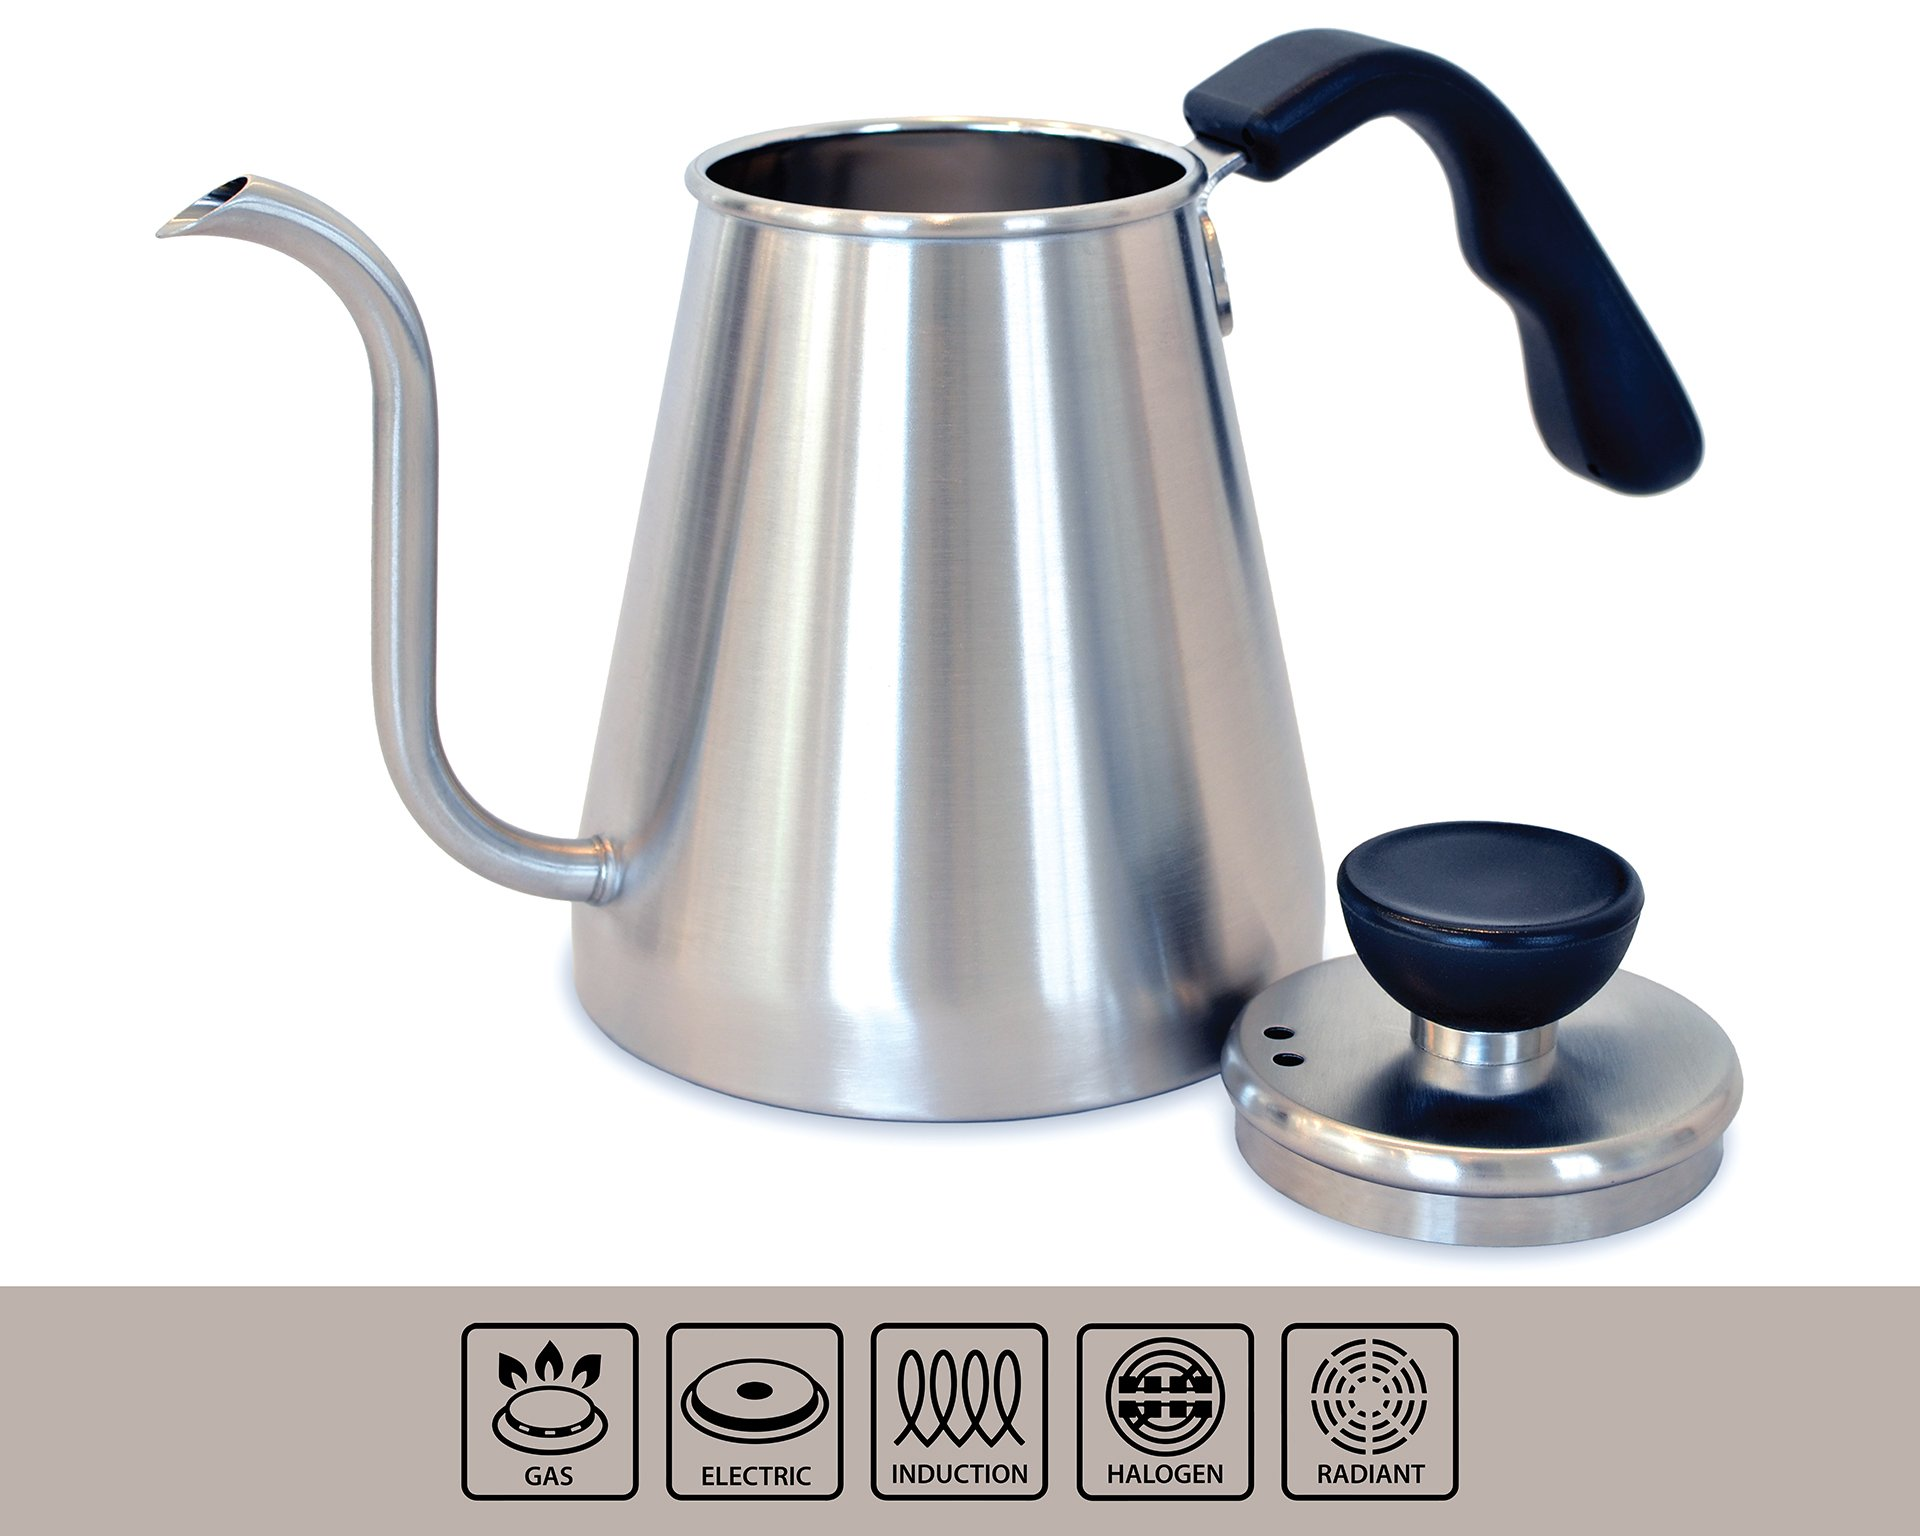 OVALWARE-RJ3-Pour-Over-Coffee-Tea-Drip-Kettle-Stainless-Steel-Precision-Gooseneck-Spout-Ergonomic-Handle-4-14-Cups-0-hires.jpg